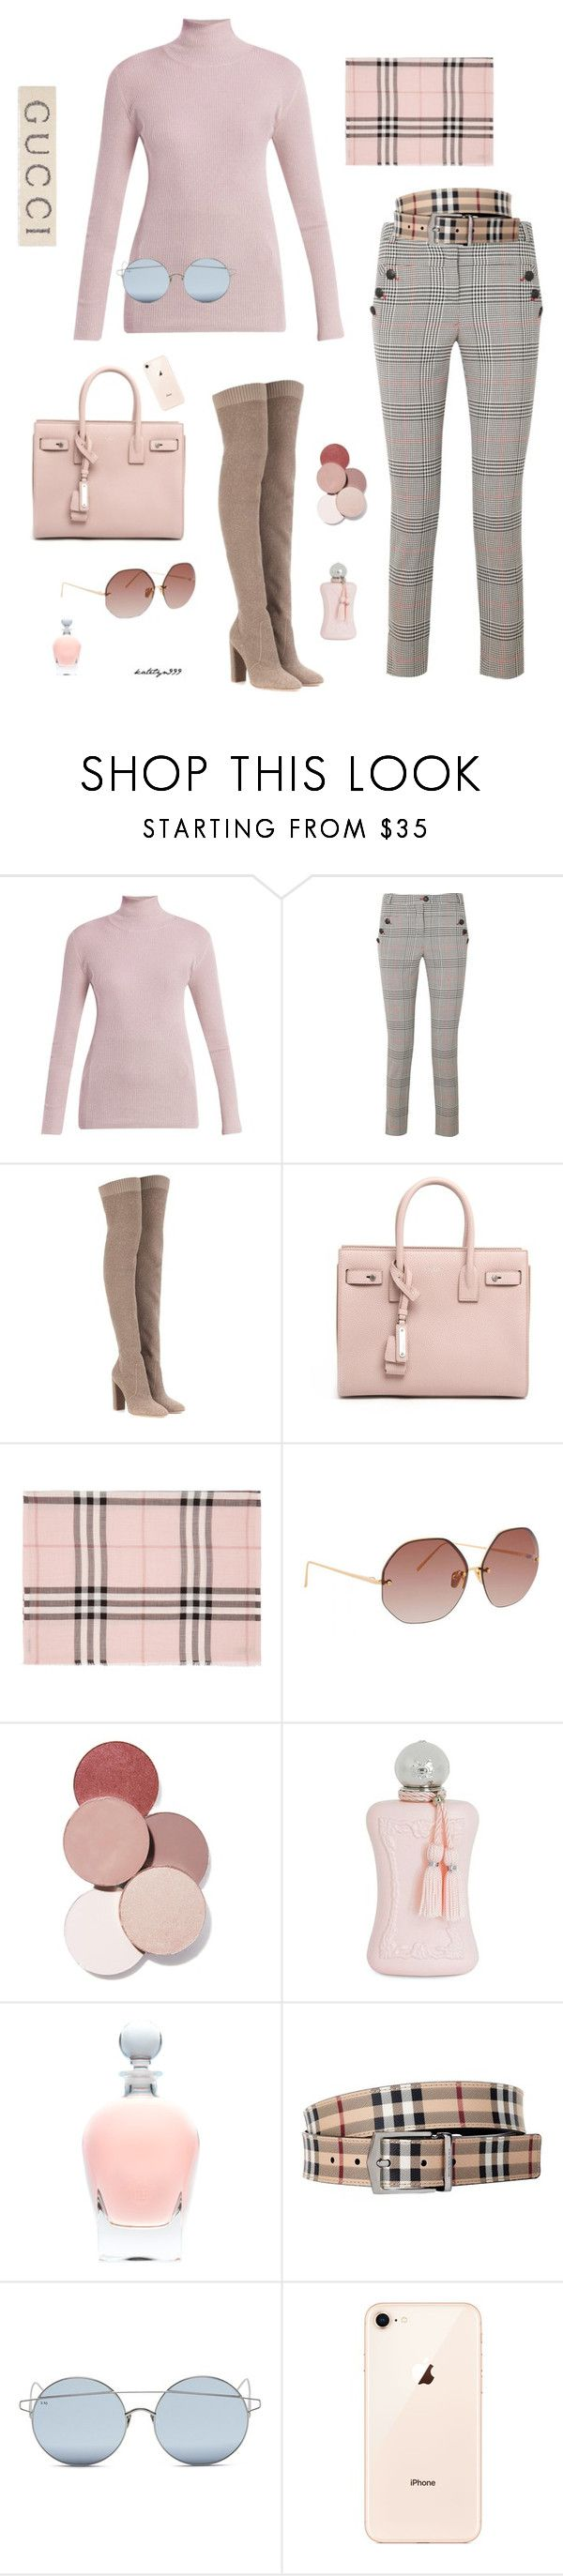 """""""Feminine & beautiful..."""" by katelyn999 ❤ liked on Polyvore featuring Prada, Veronica Beard, Gianvito Rossi, Yves Saint Laurent, Burberry, Linda Farrow, LunatiCK Cosmetic Labs, Parfums de Marly, For Art's Sake and Gucci"""